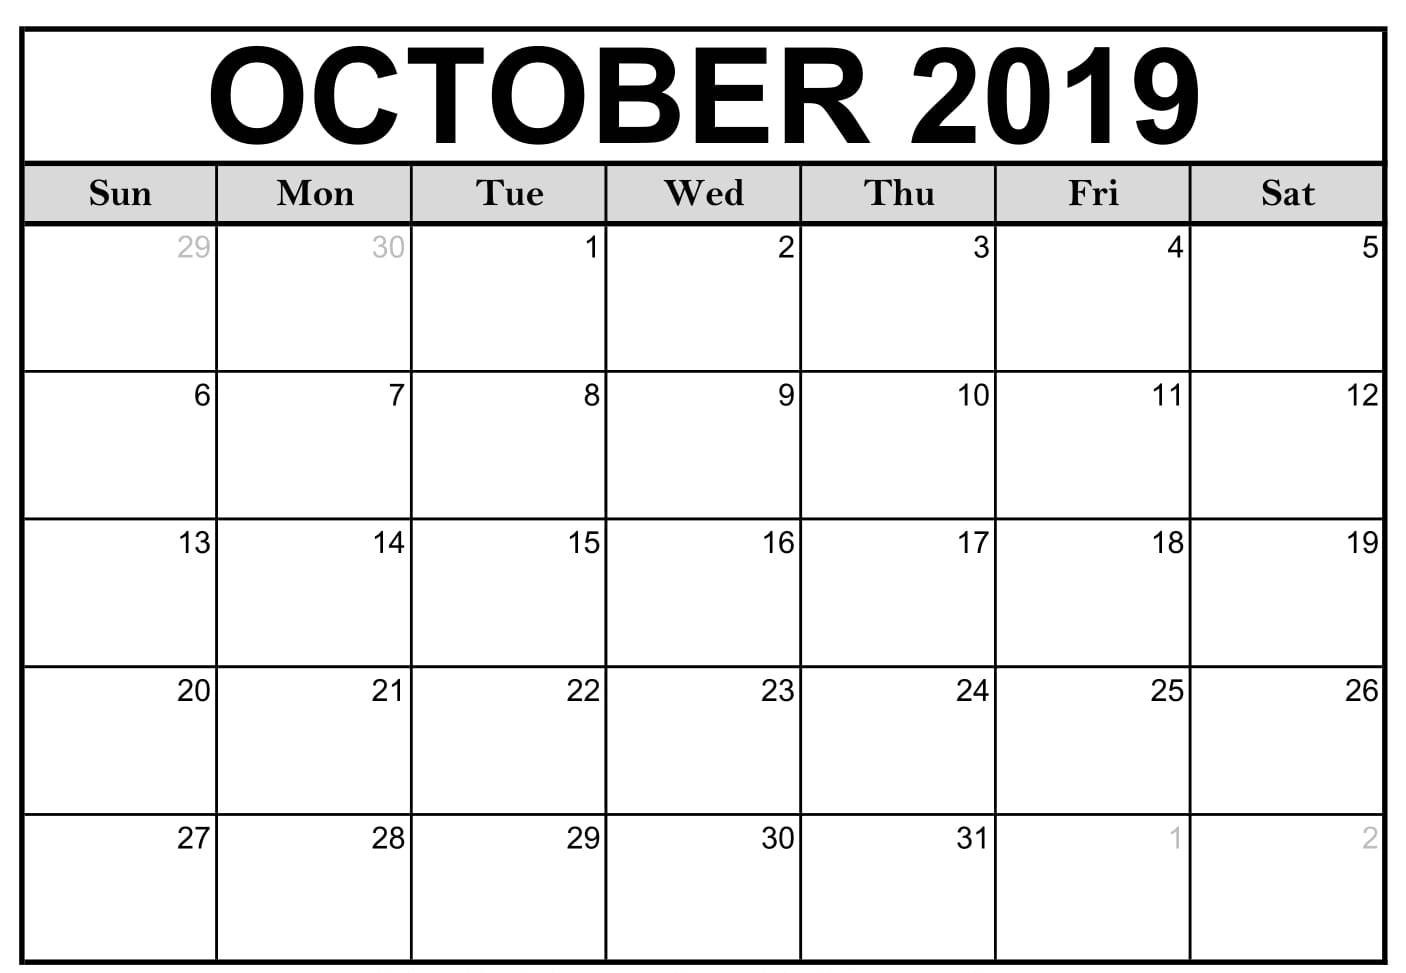 Free Fillable Calendar For October 2019 Printable Editable-Calendar Template Fillable Pdf